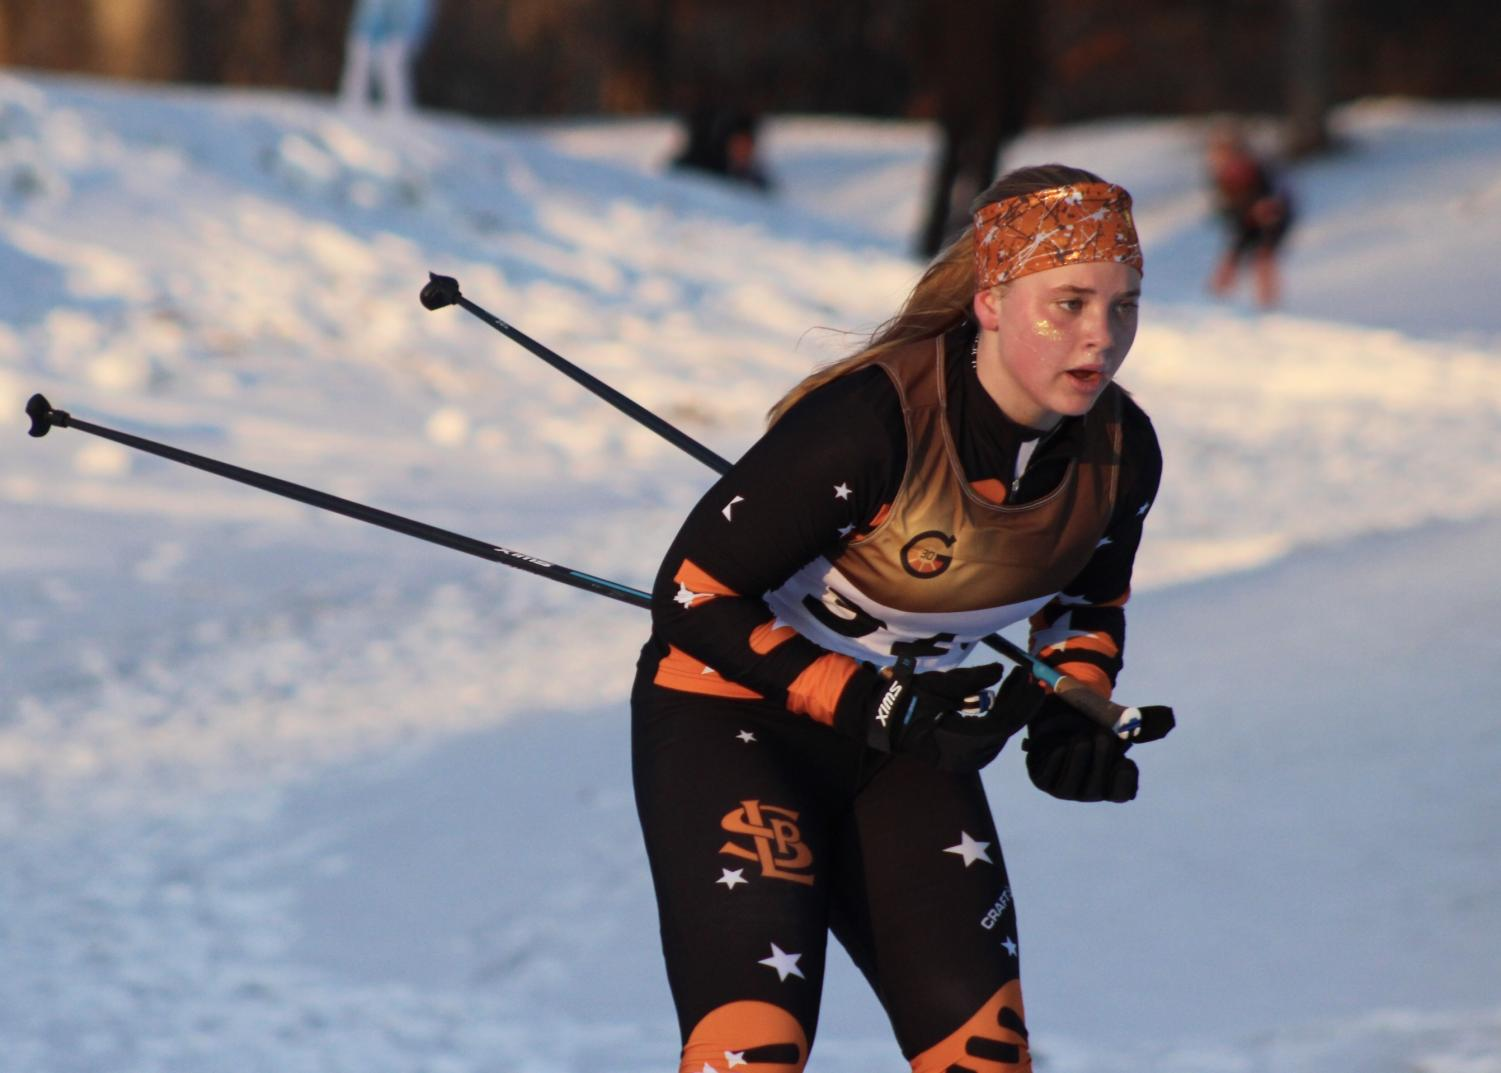 Sophomore Victoria Schmelzle skis downhill Jan. 7 at Theodore Wirth Park. At the Metro West Classic Dual meet, the girls placed third out of nine teams and the boys placed sixth out of nine teams. According to head coach Doug Peterson, the dual prepared the athletes for the conference meet Jan. 29.